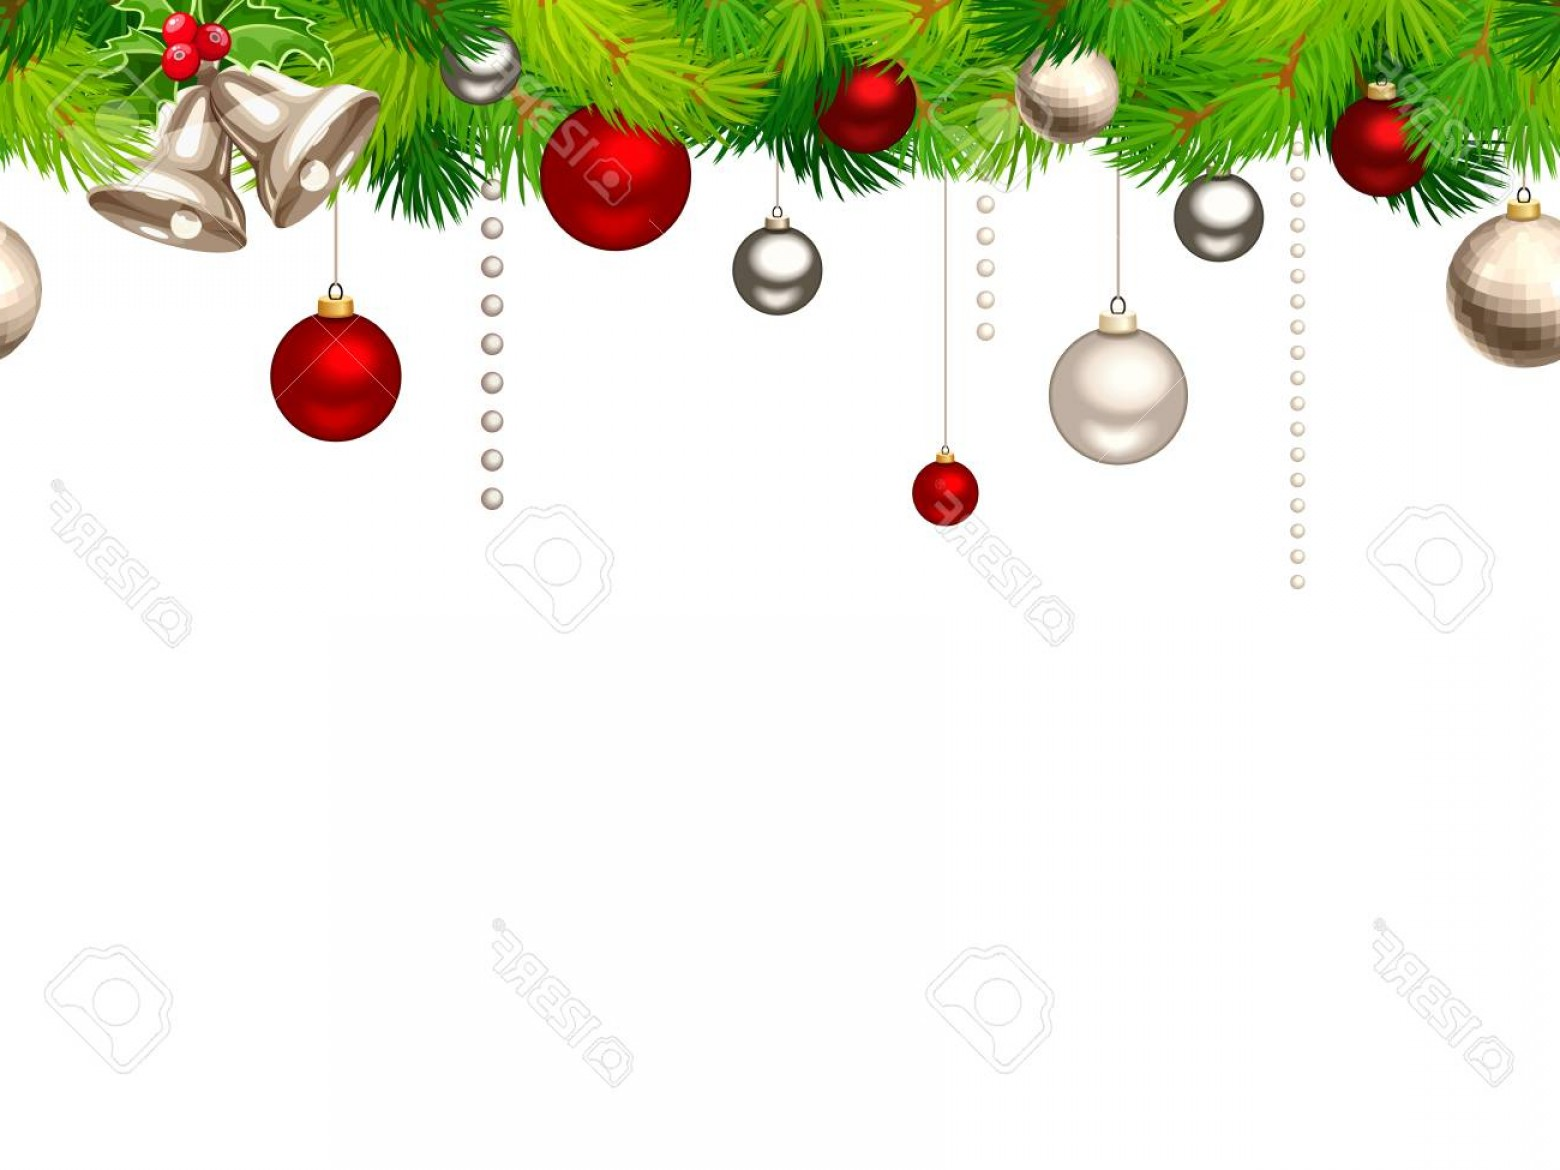 Christmas Horizontal Vector: Photovector Christmas Horizontal Seamless Background With Red And Silver Balls And Green Fir Branches